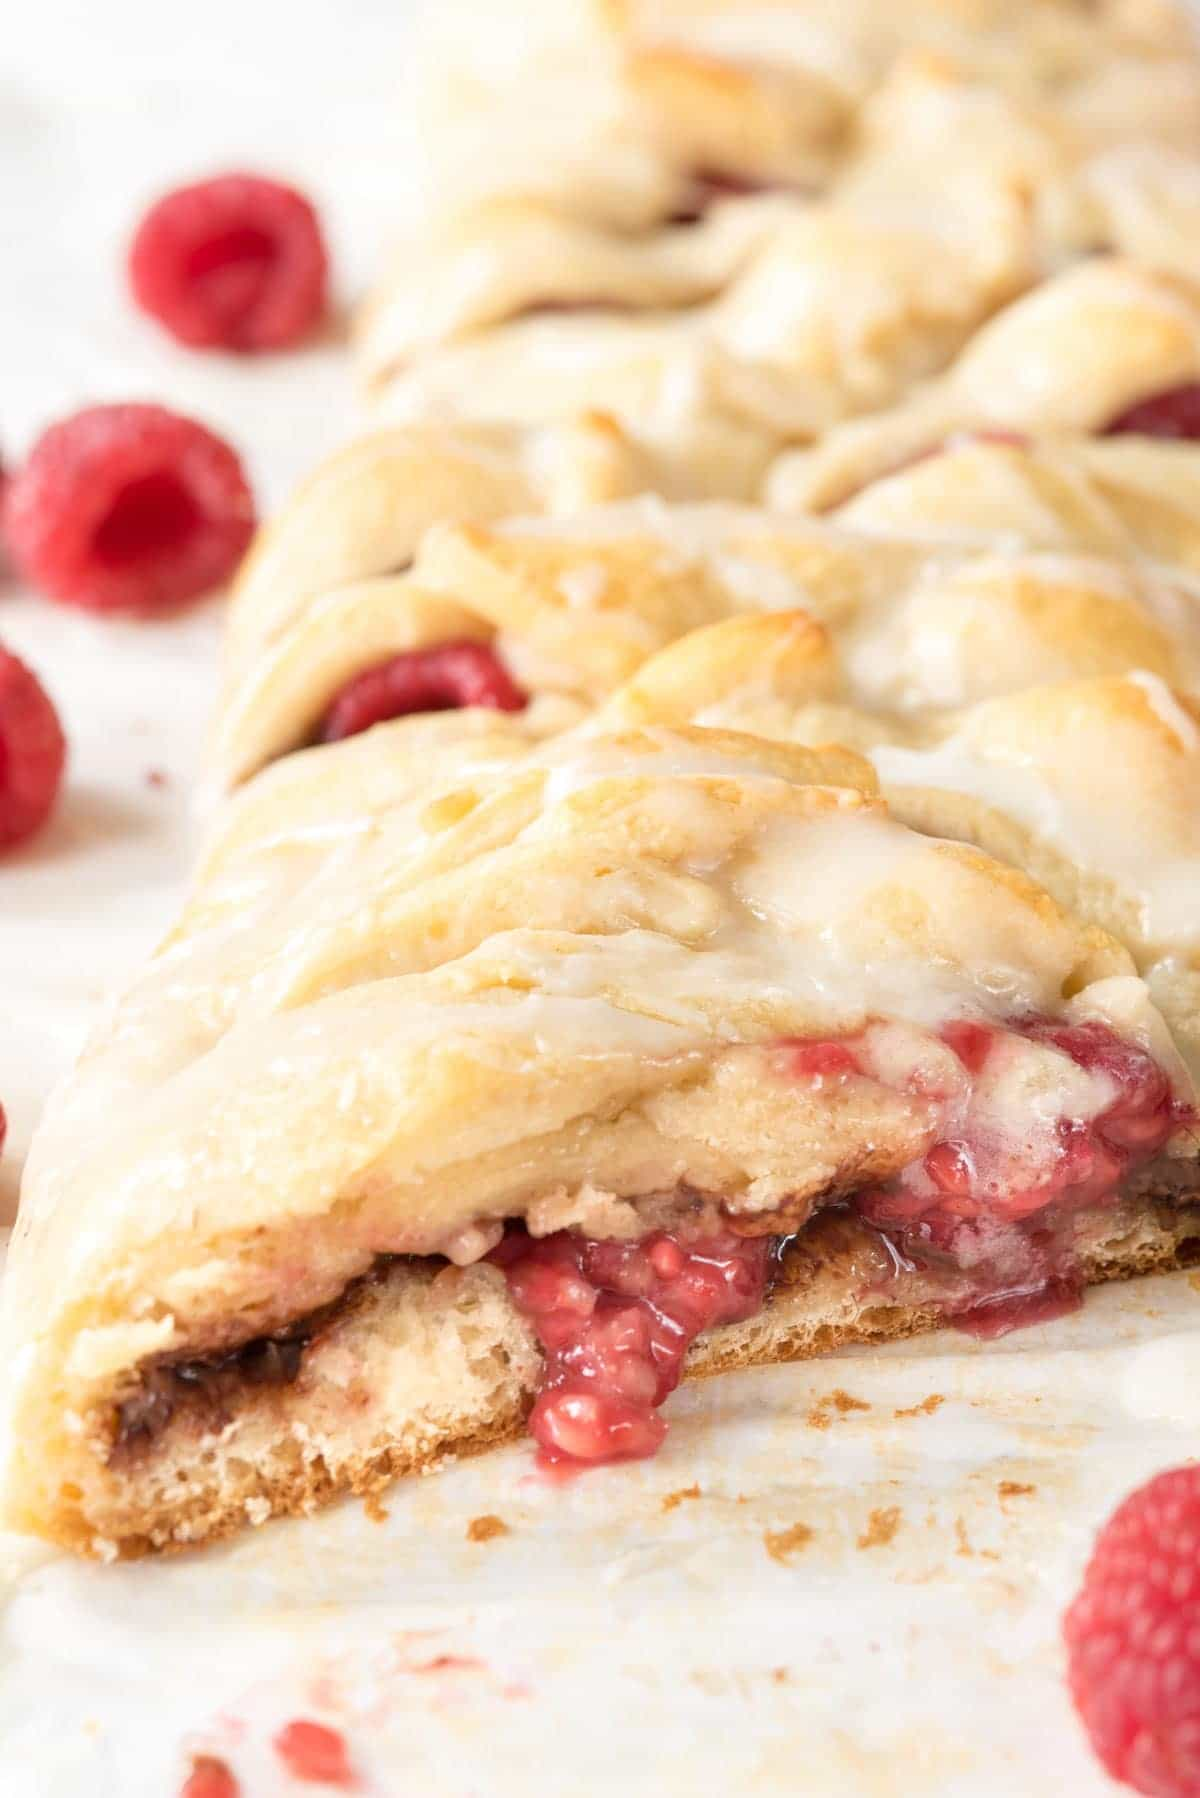 Easy Raspberry Nutella Danish Recipe - just 30 minutes to the best breakfast pastry! Full of Nutella and raspberries and it's so easy!